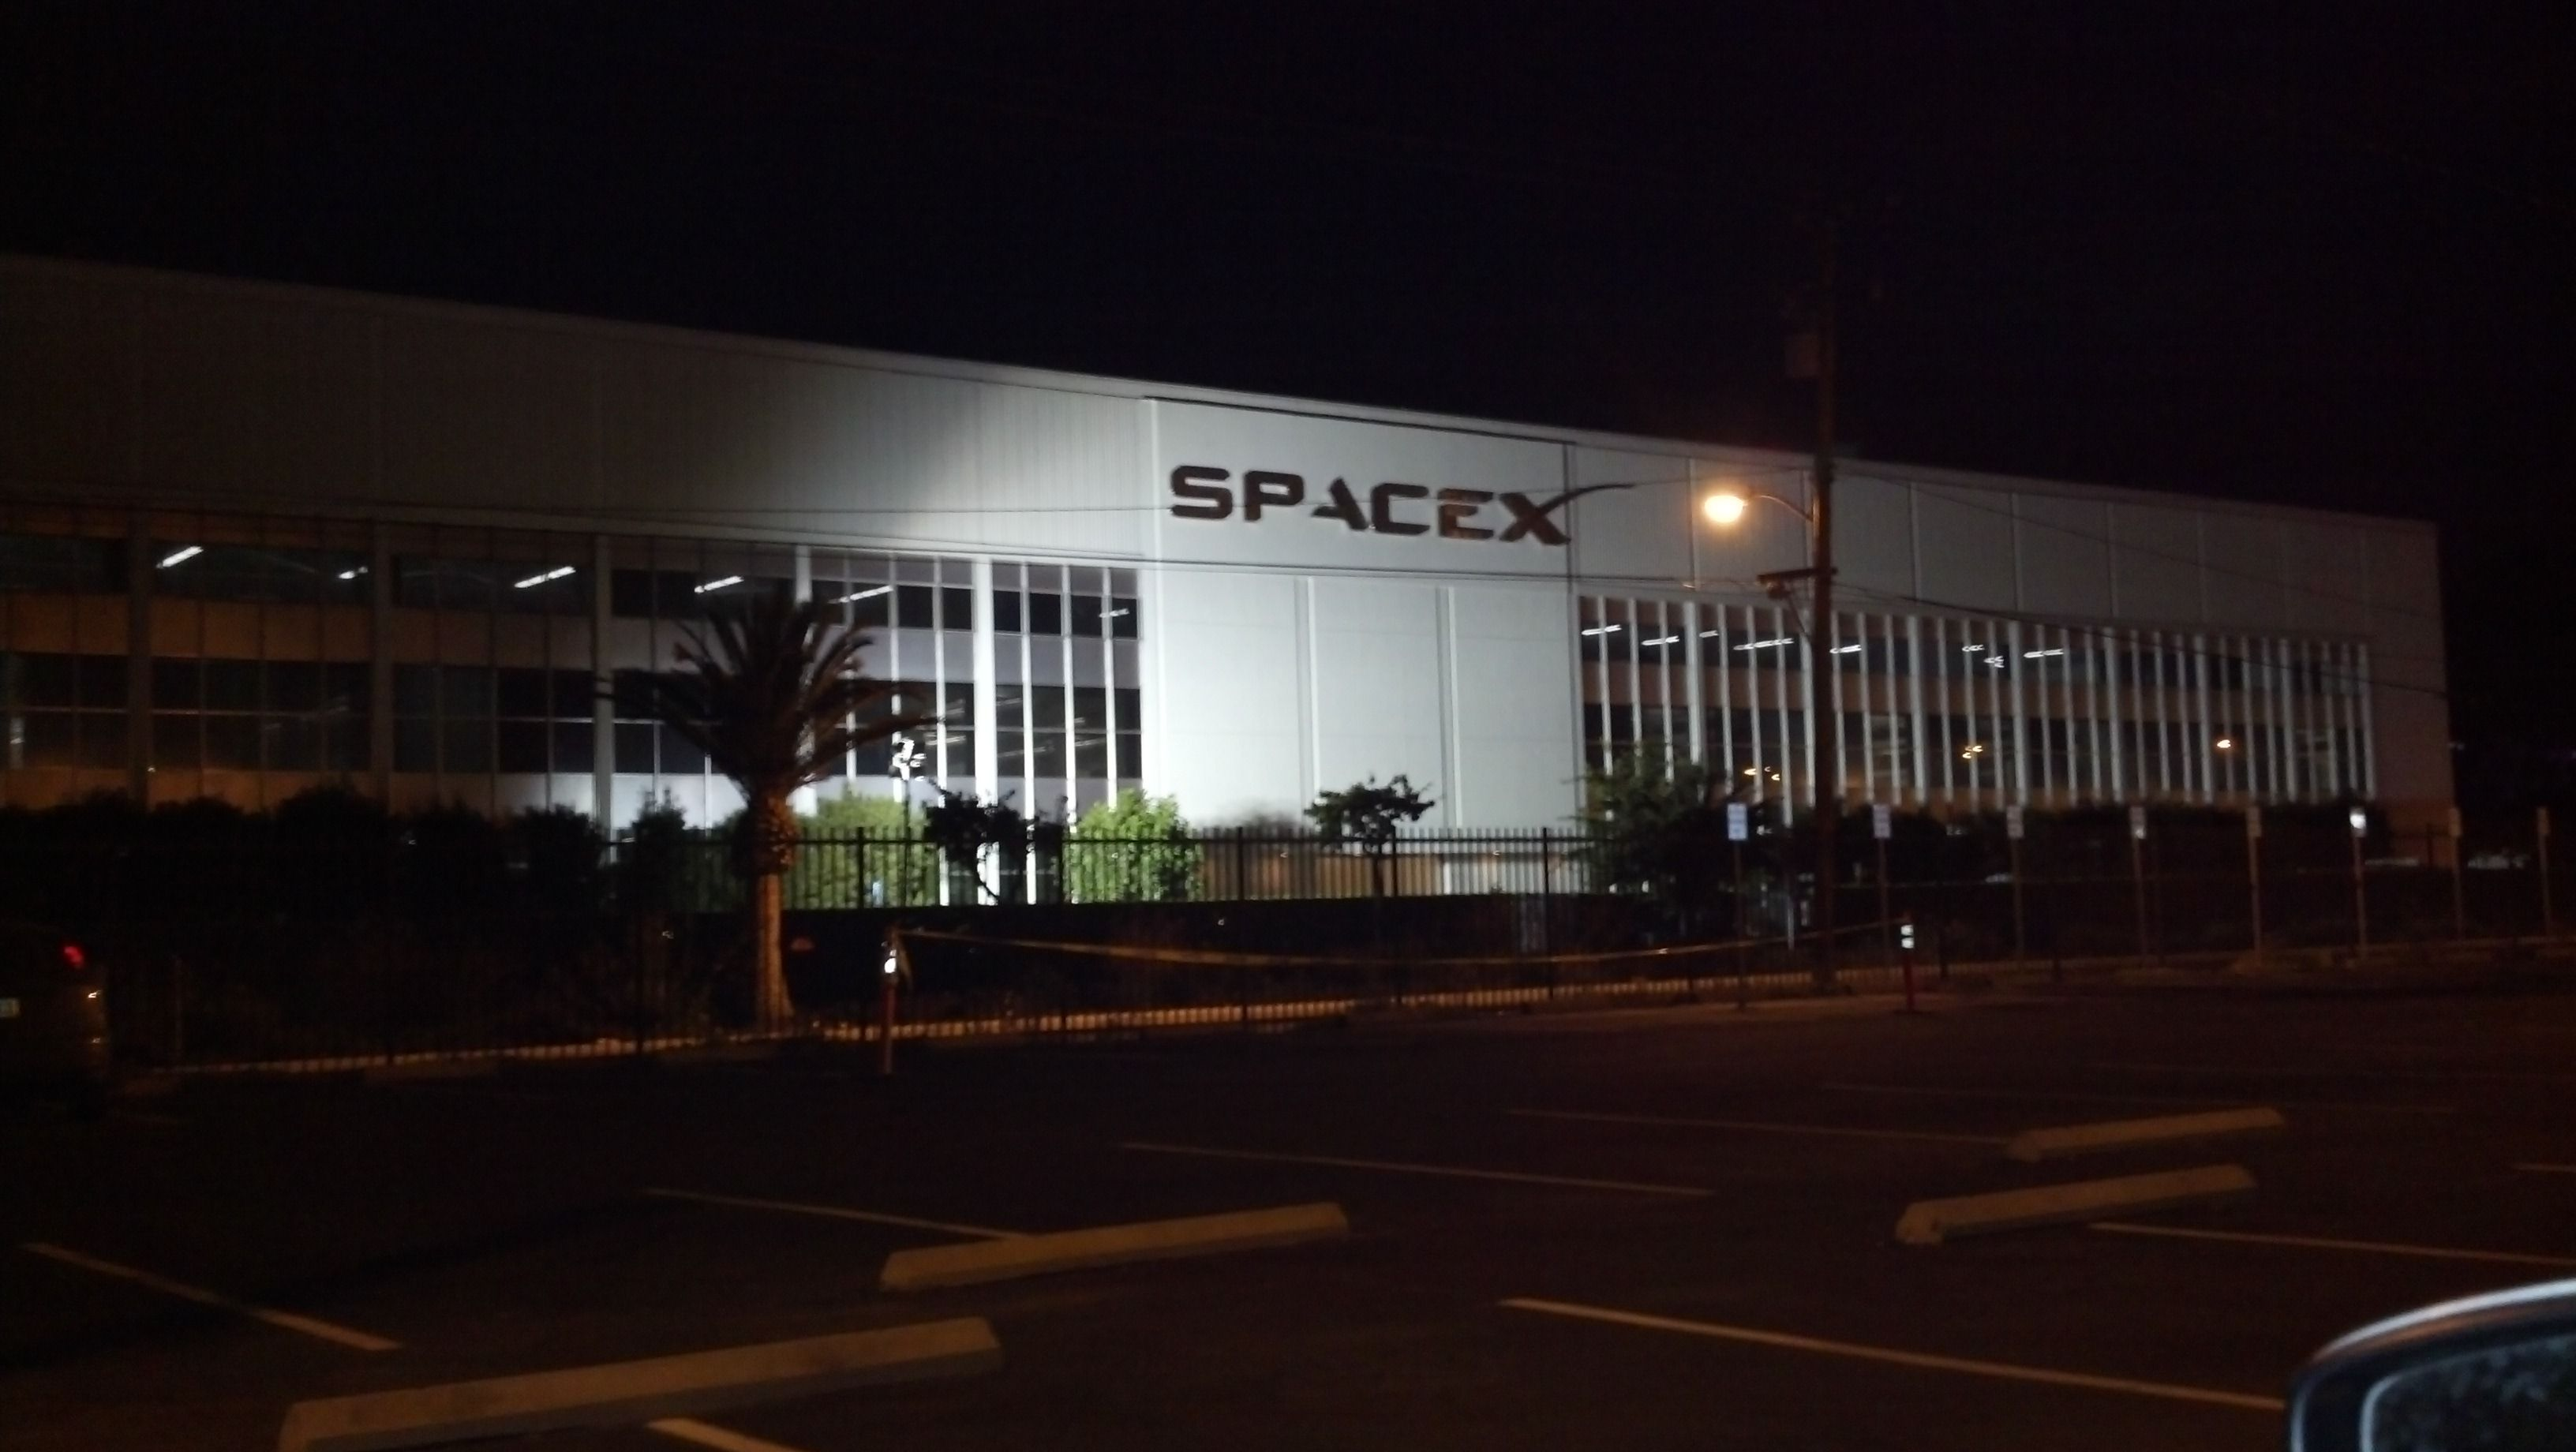 SpaceX Hawthorne Facility (page 3) - Pics about space